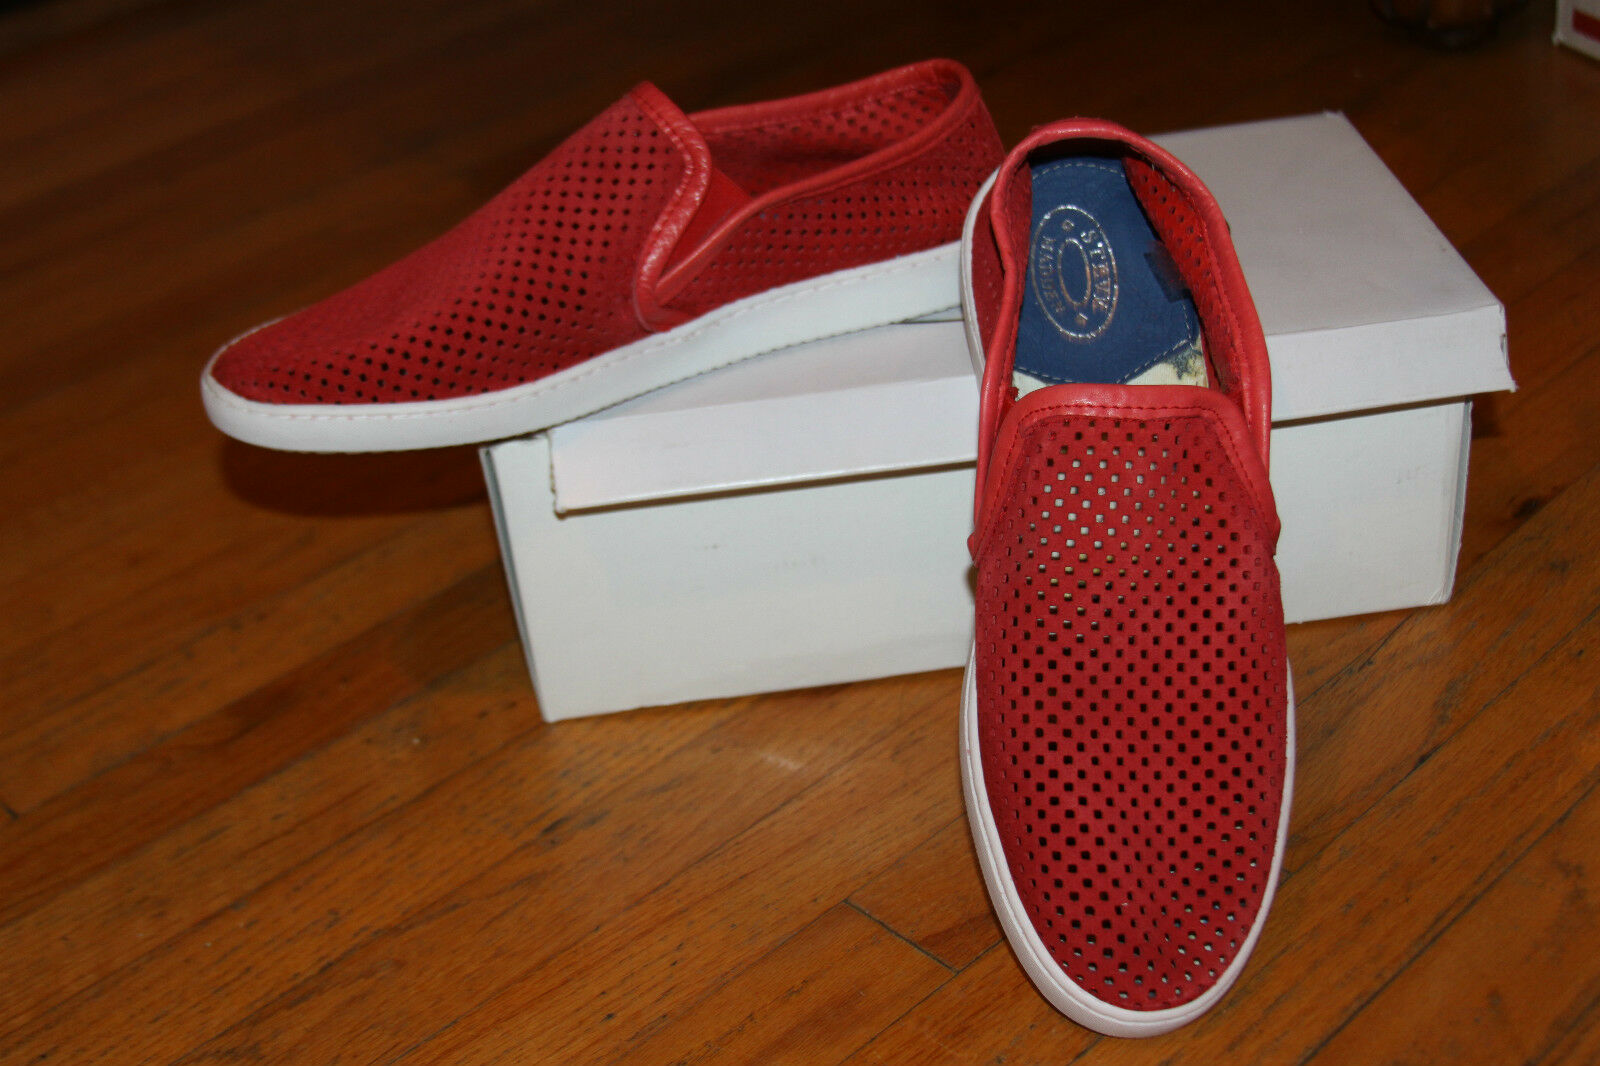 STEVE MADDEN PUNCH RED SUEDE SLIP-ON MEN'S SHOE SZ 11